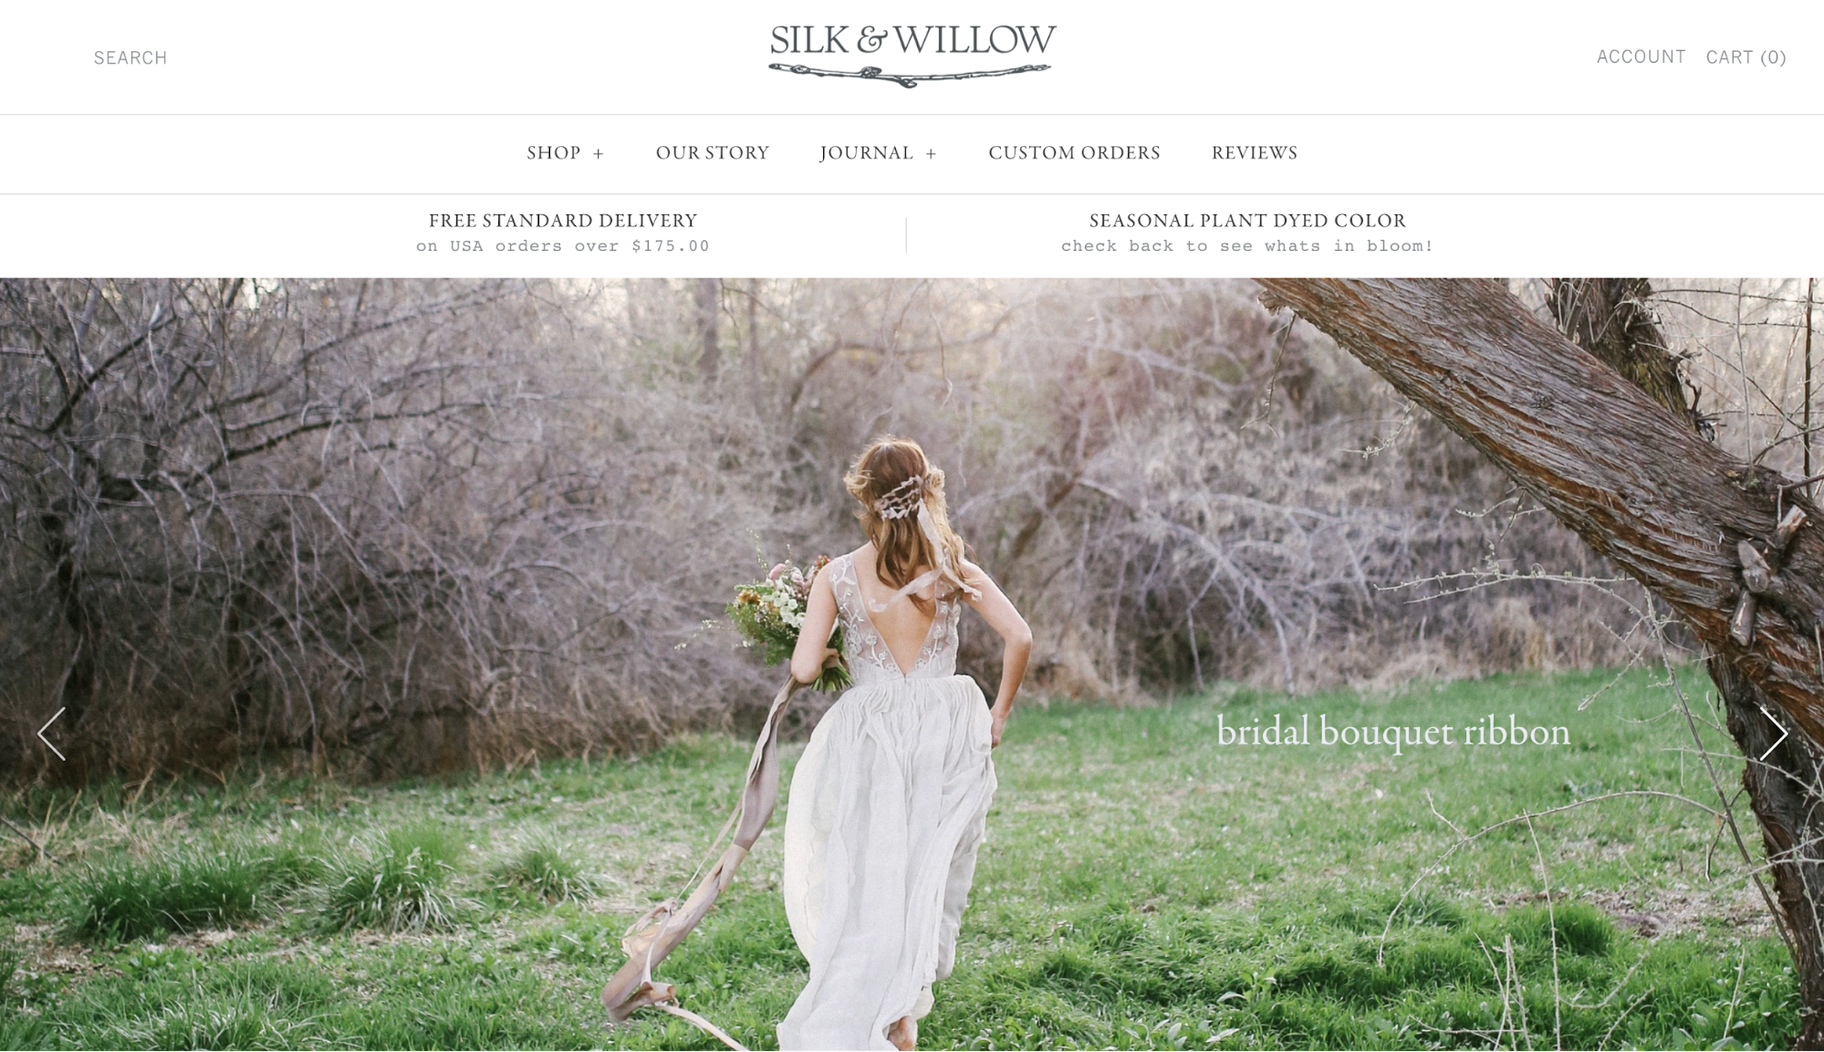 Small Business Website Example: Silk & Willow